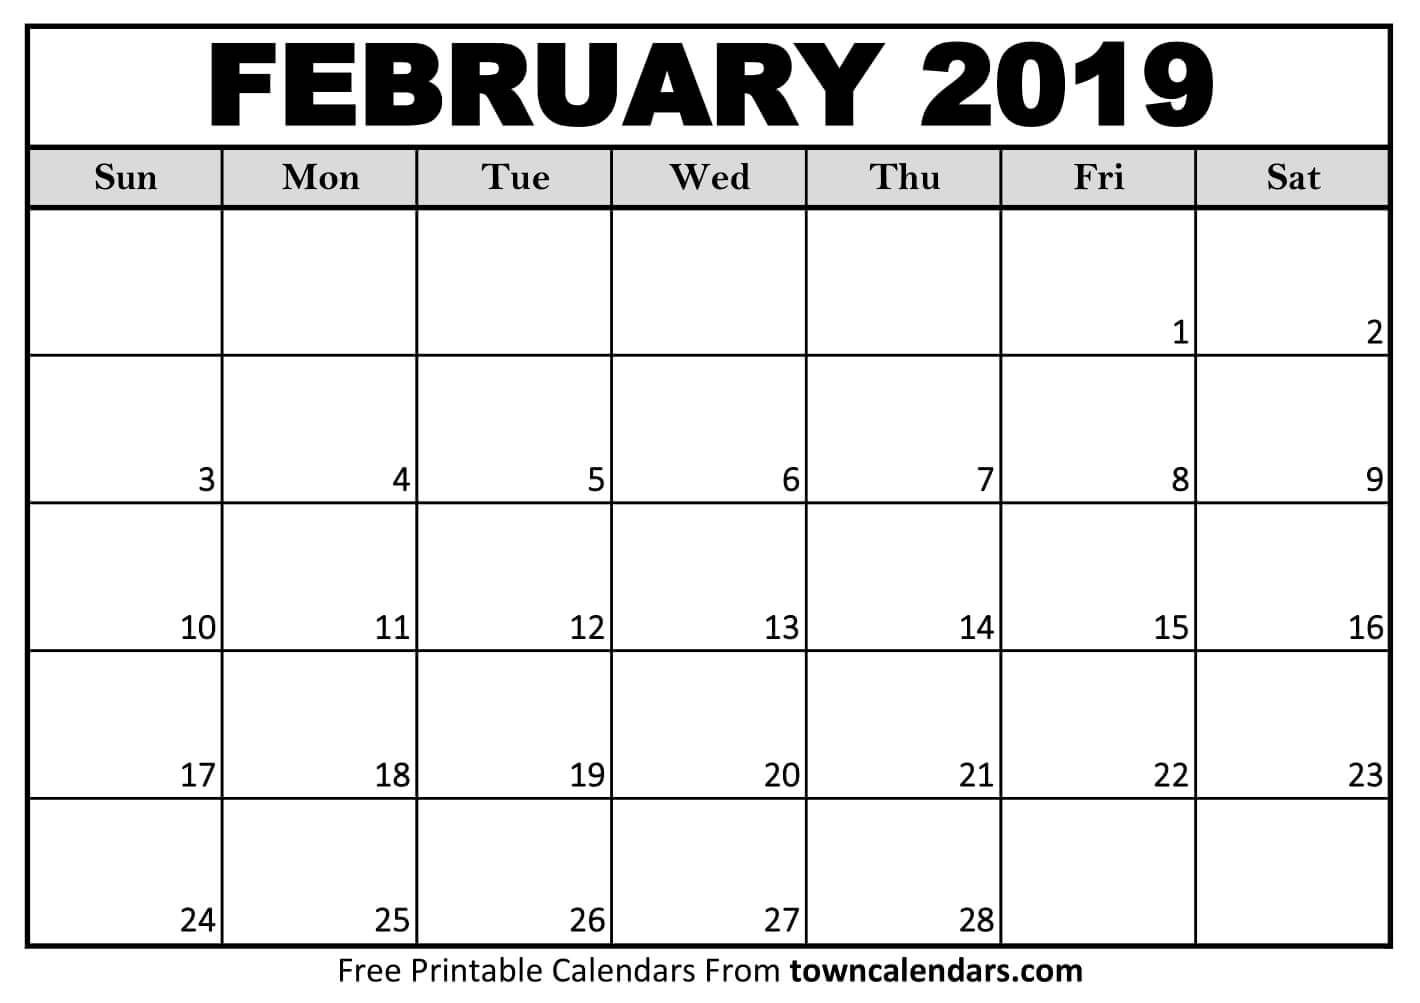 Waterproof February 2019 Calendar free february 2019 waterproof calendar | 2019 Calendars | Calendar